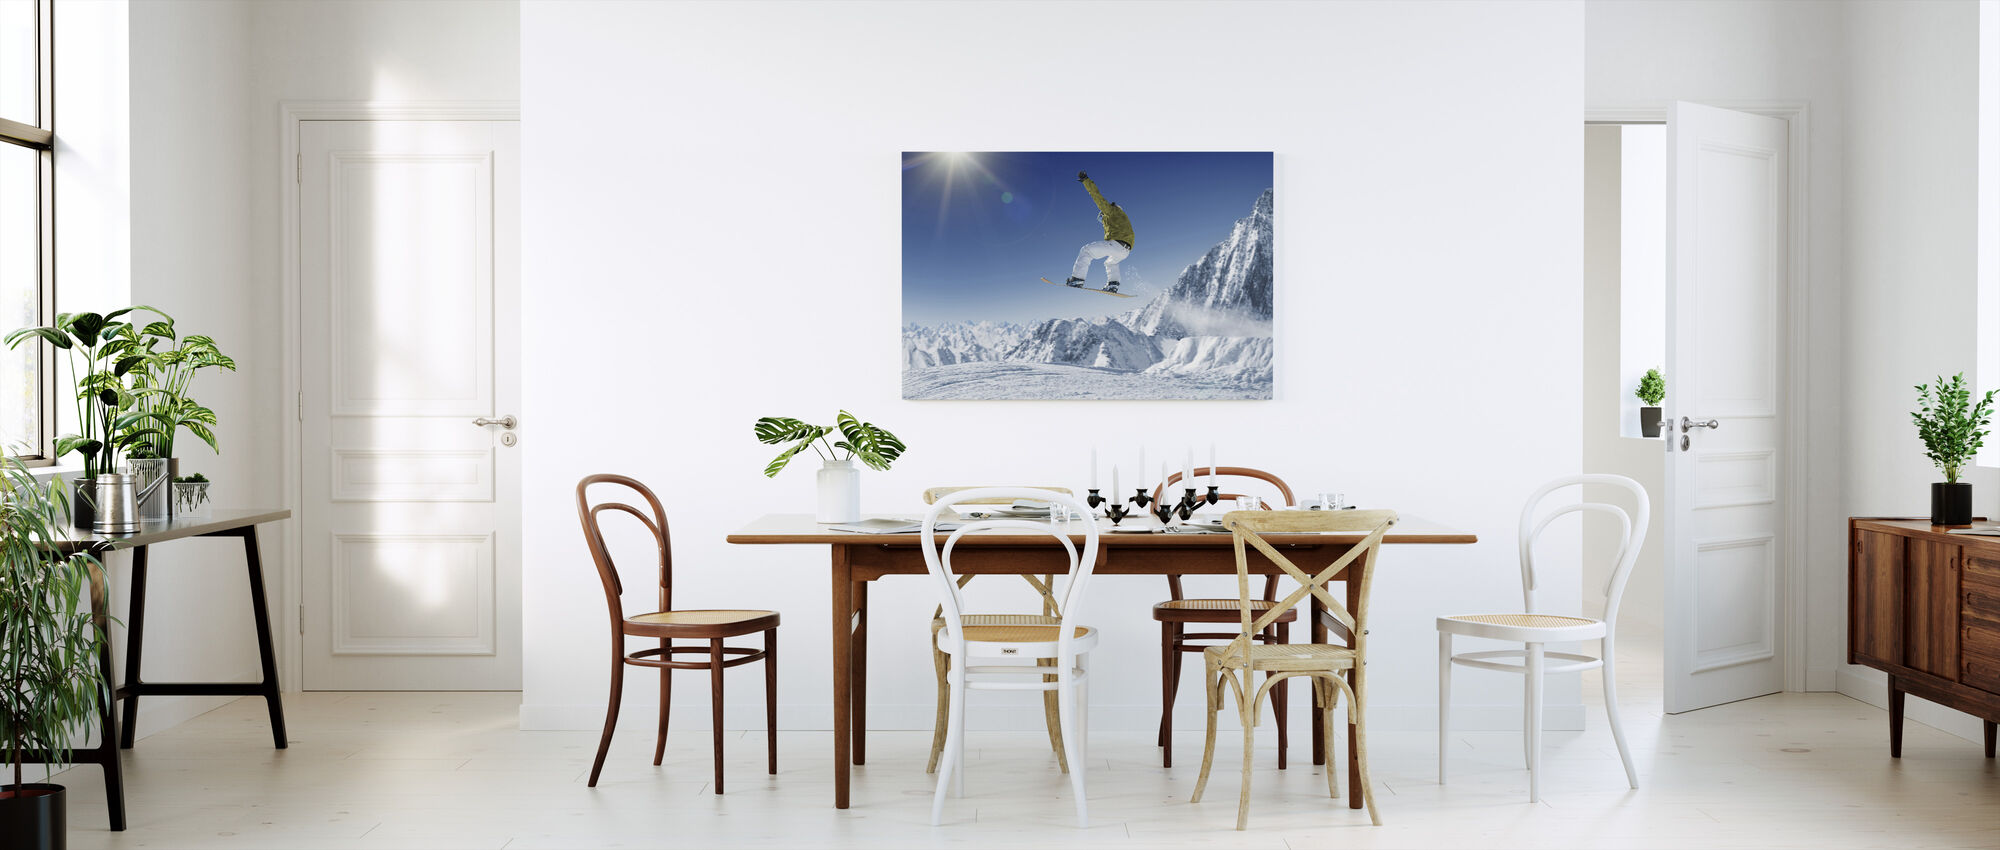 Skier in the high Mountains - Canvas print - Kitchen